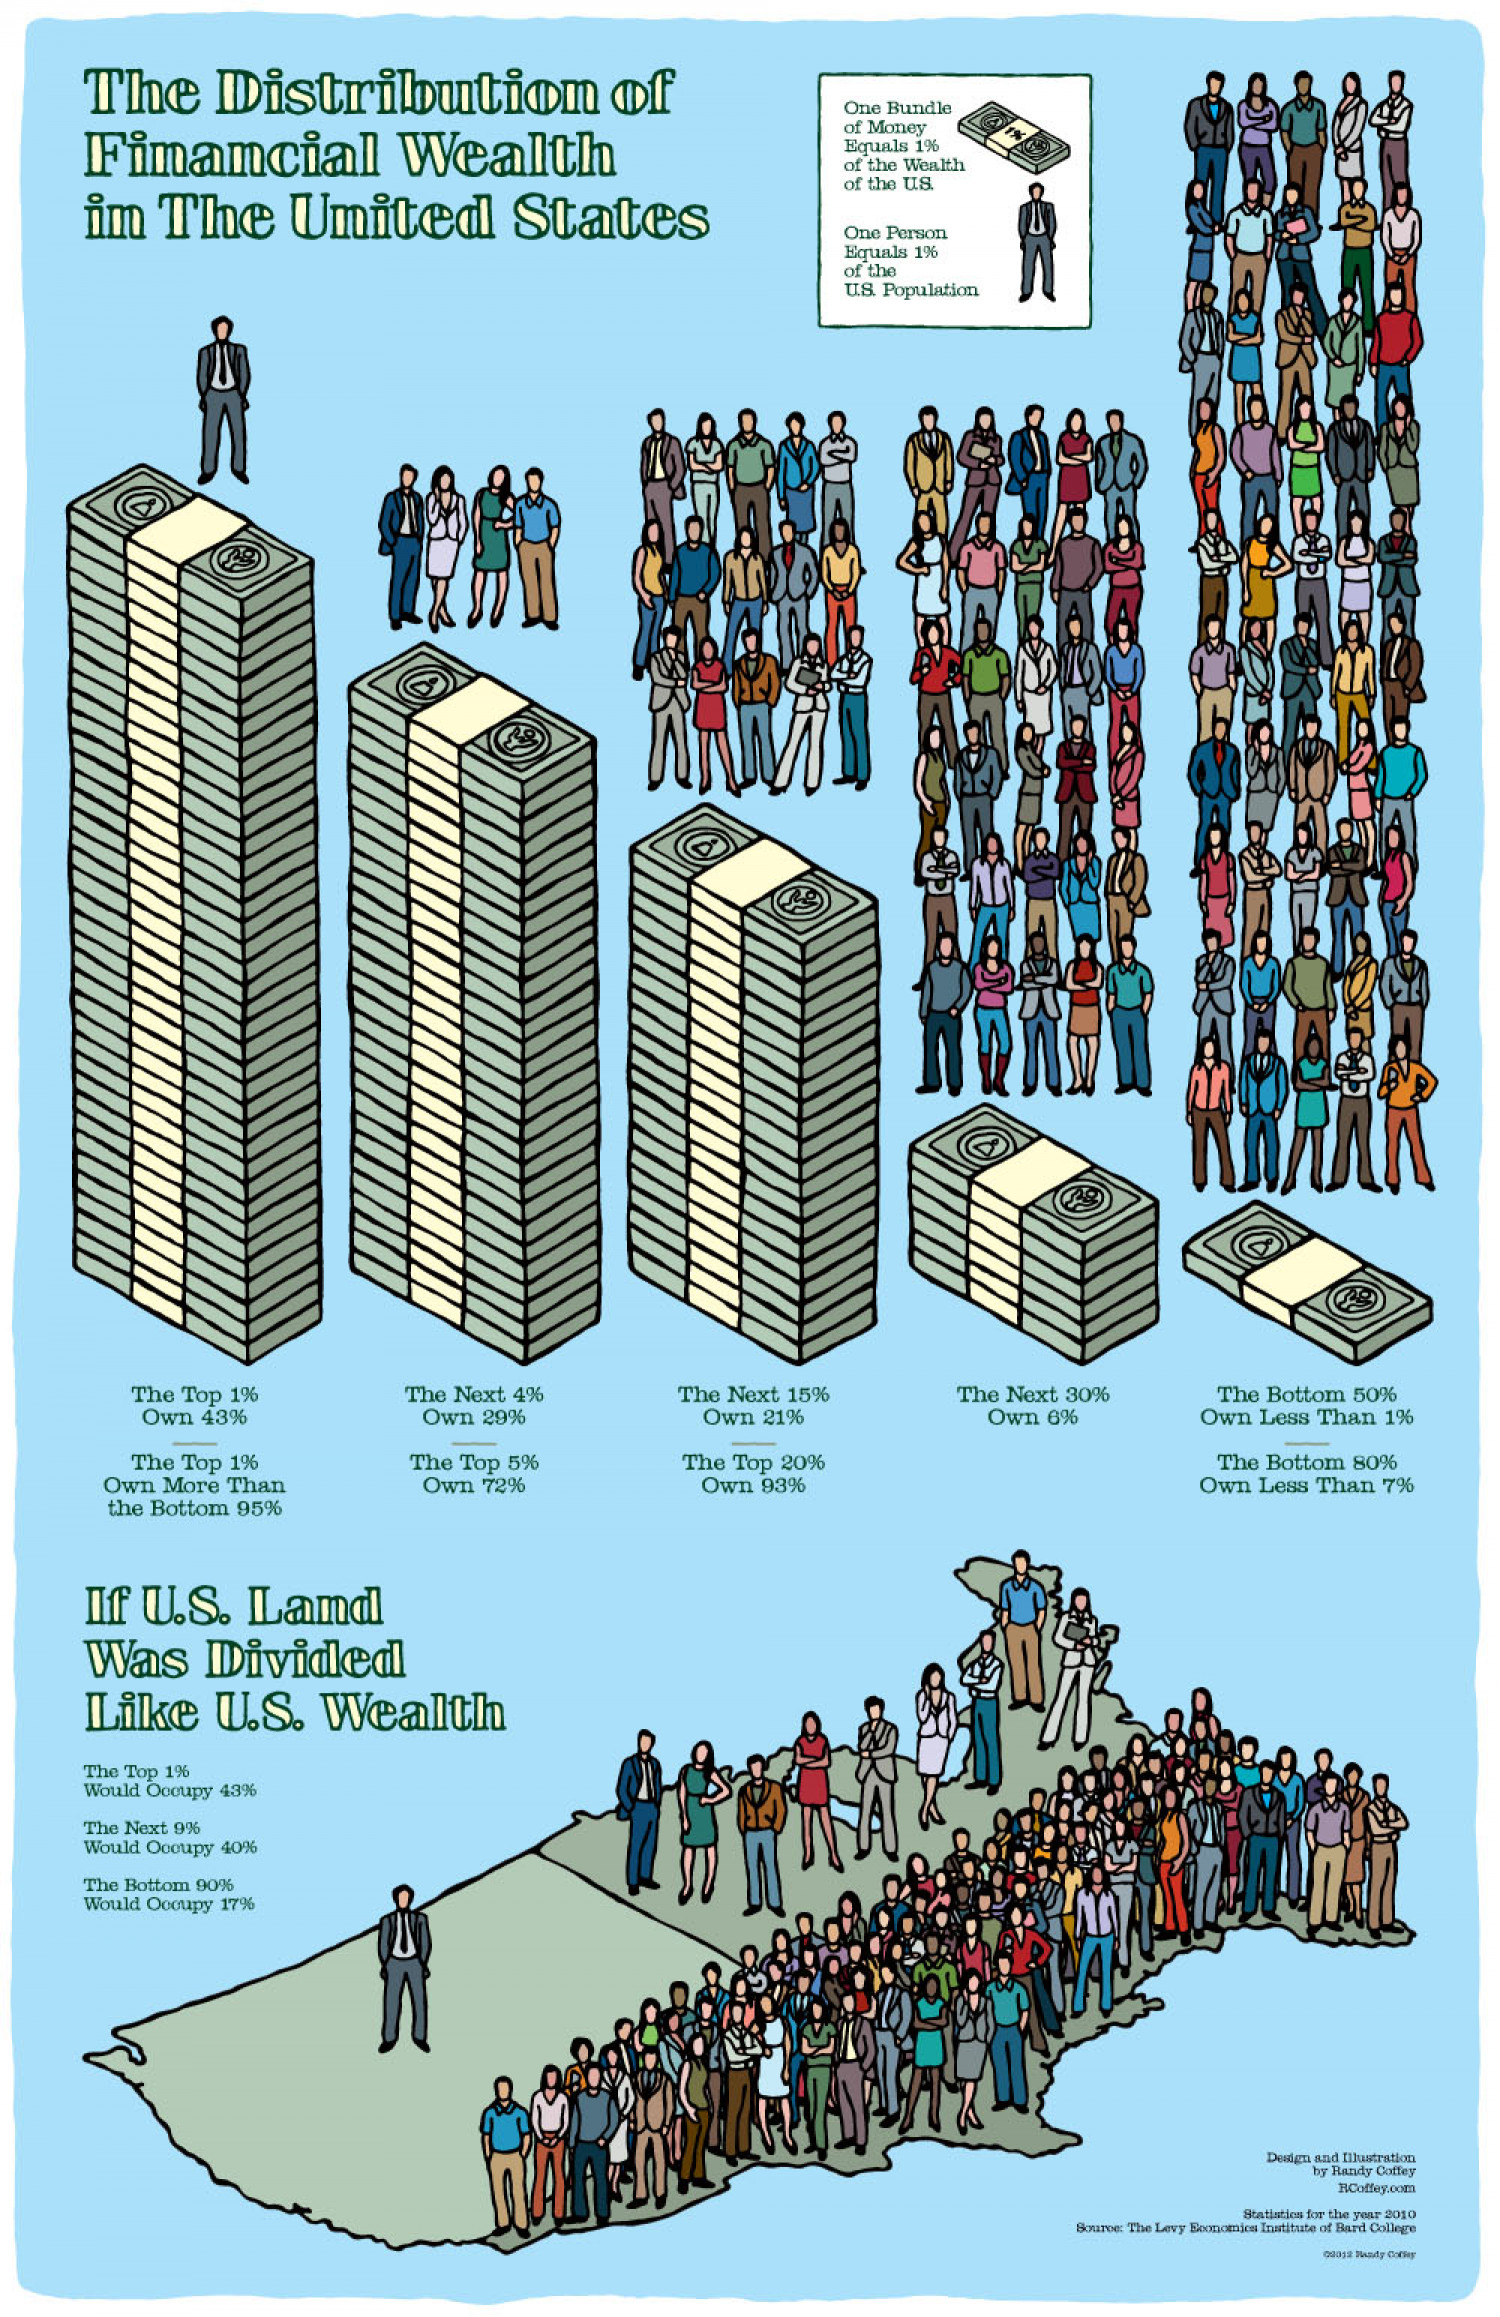 The Distribution of Financial Wealth in the US Infographic